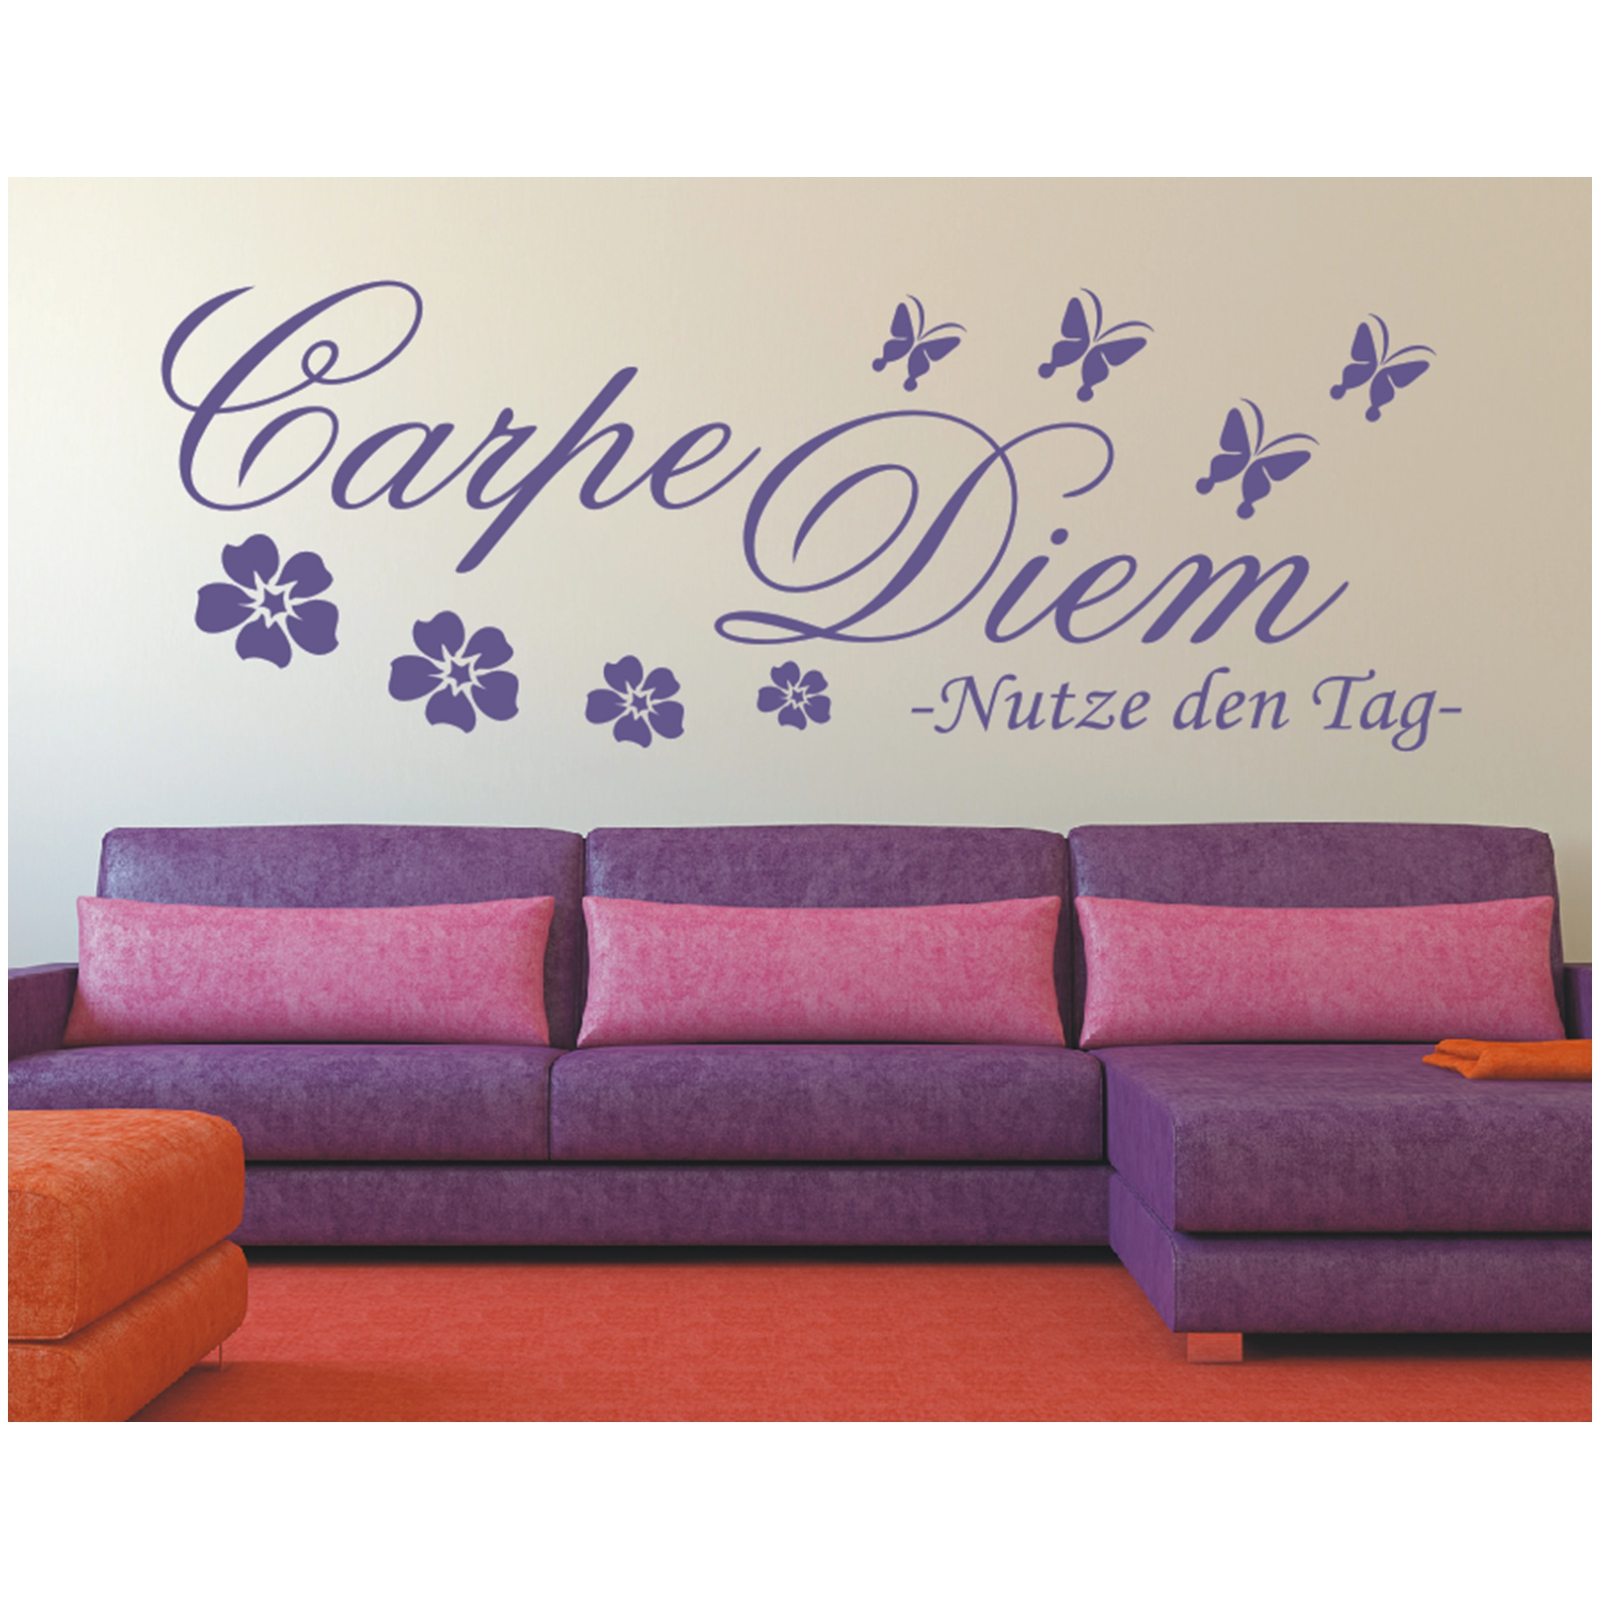 wandtattoo spruch carpe diem nutze den tag wandsticker wandaufkleber sticker ebay. Black Bedroom Furniture Sets. Home Design Ideas